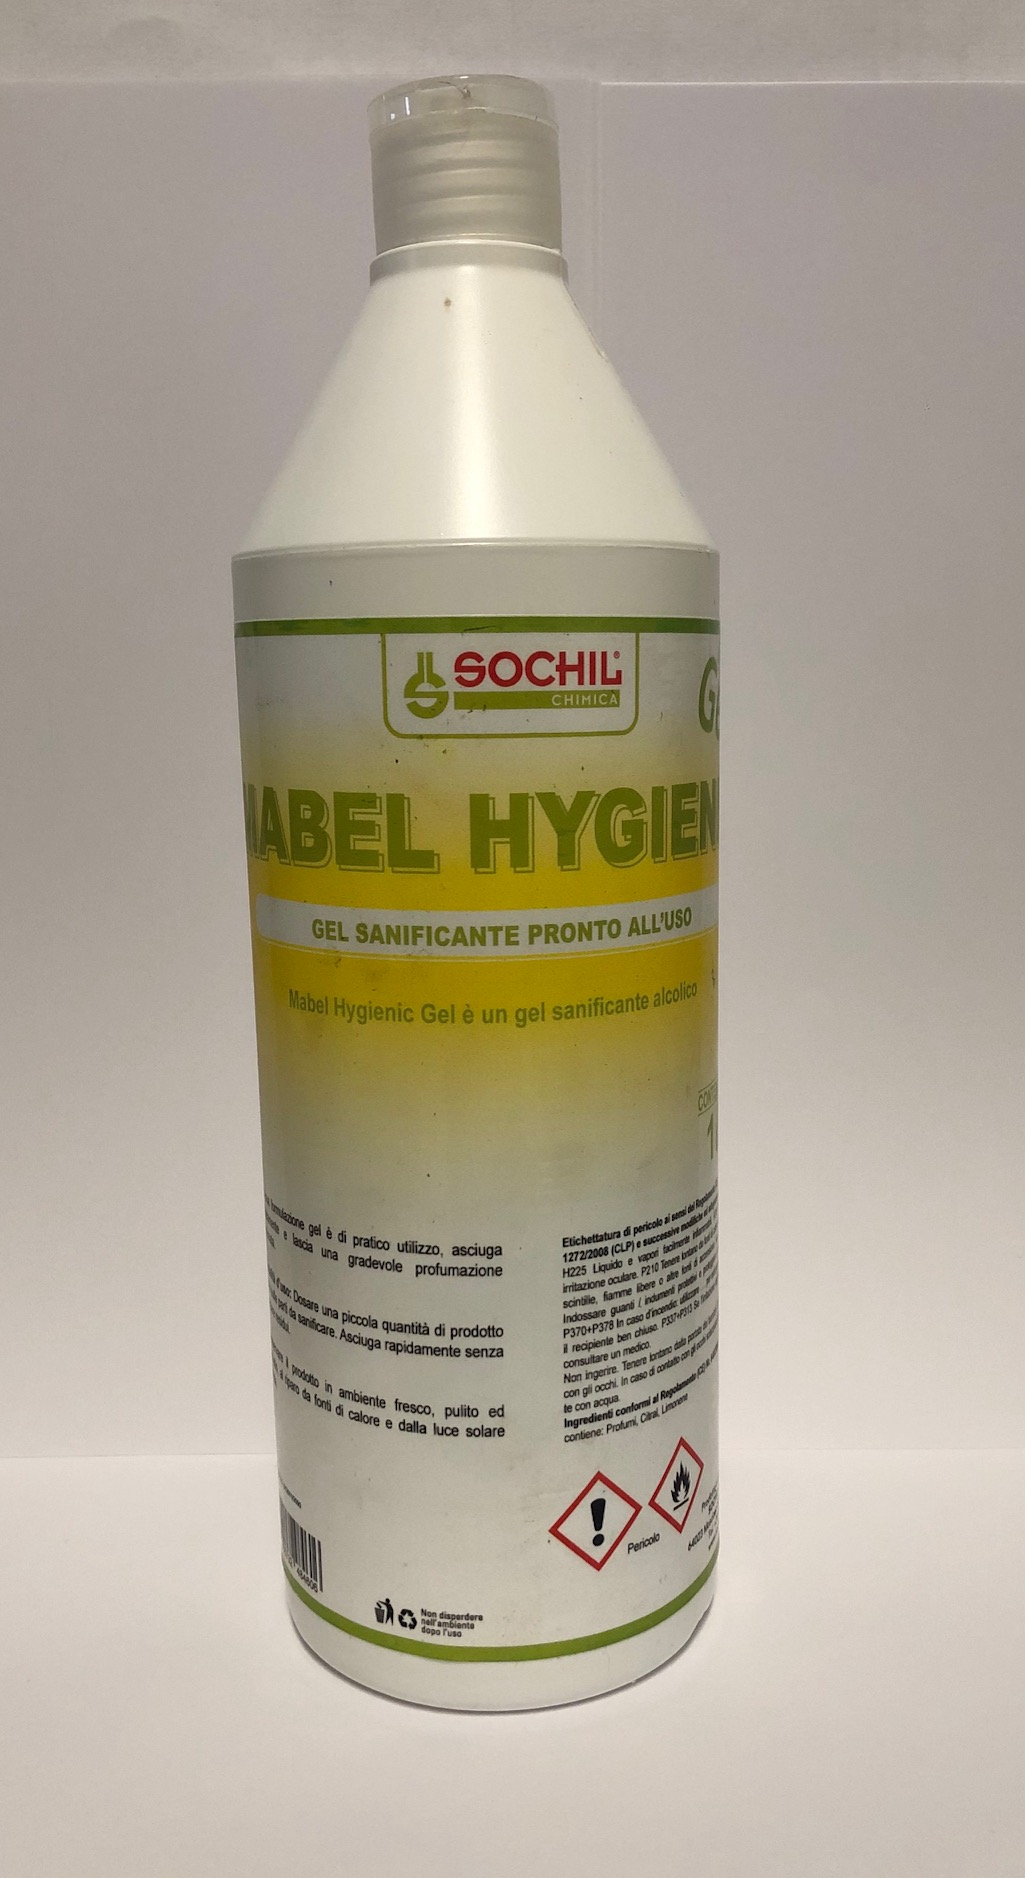 MABEL HYGIENIC - GEL SANIFICANTE PRONTO ALL'USO